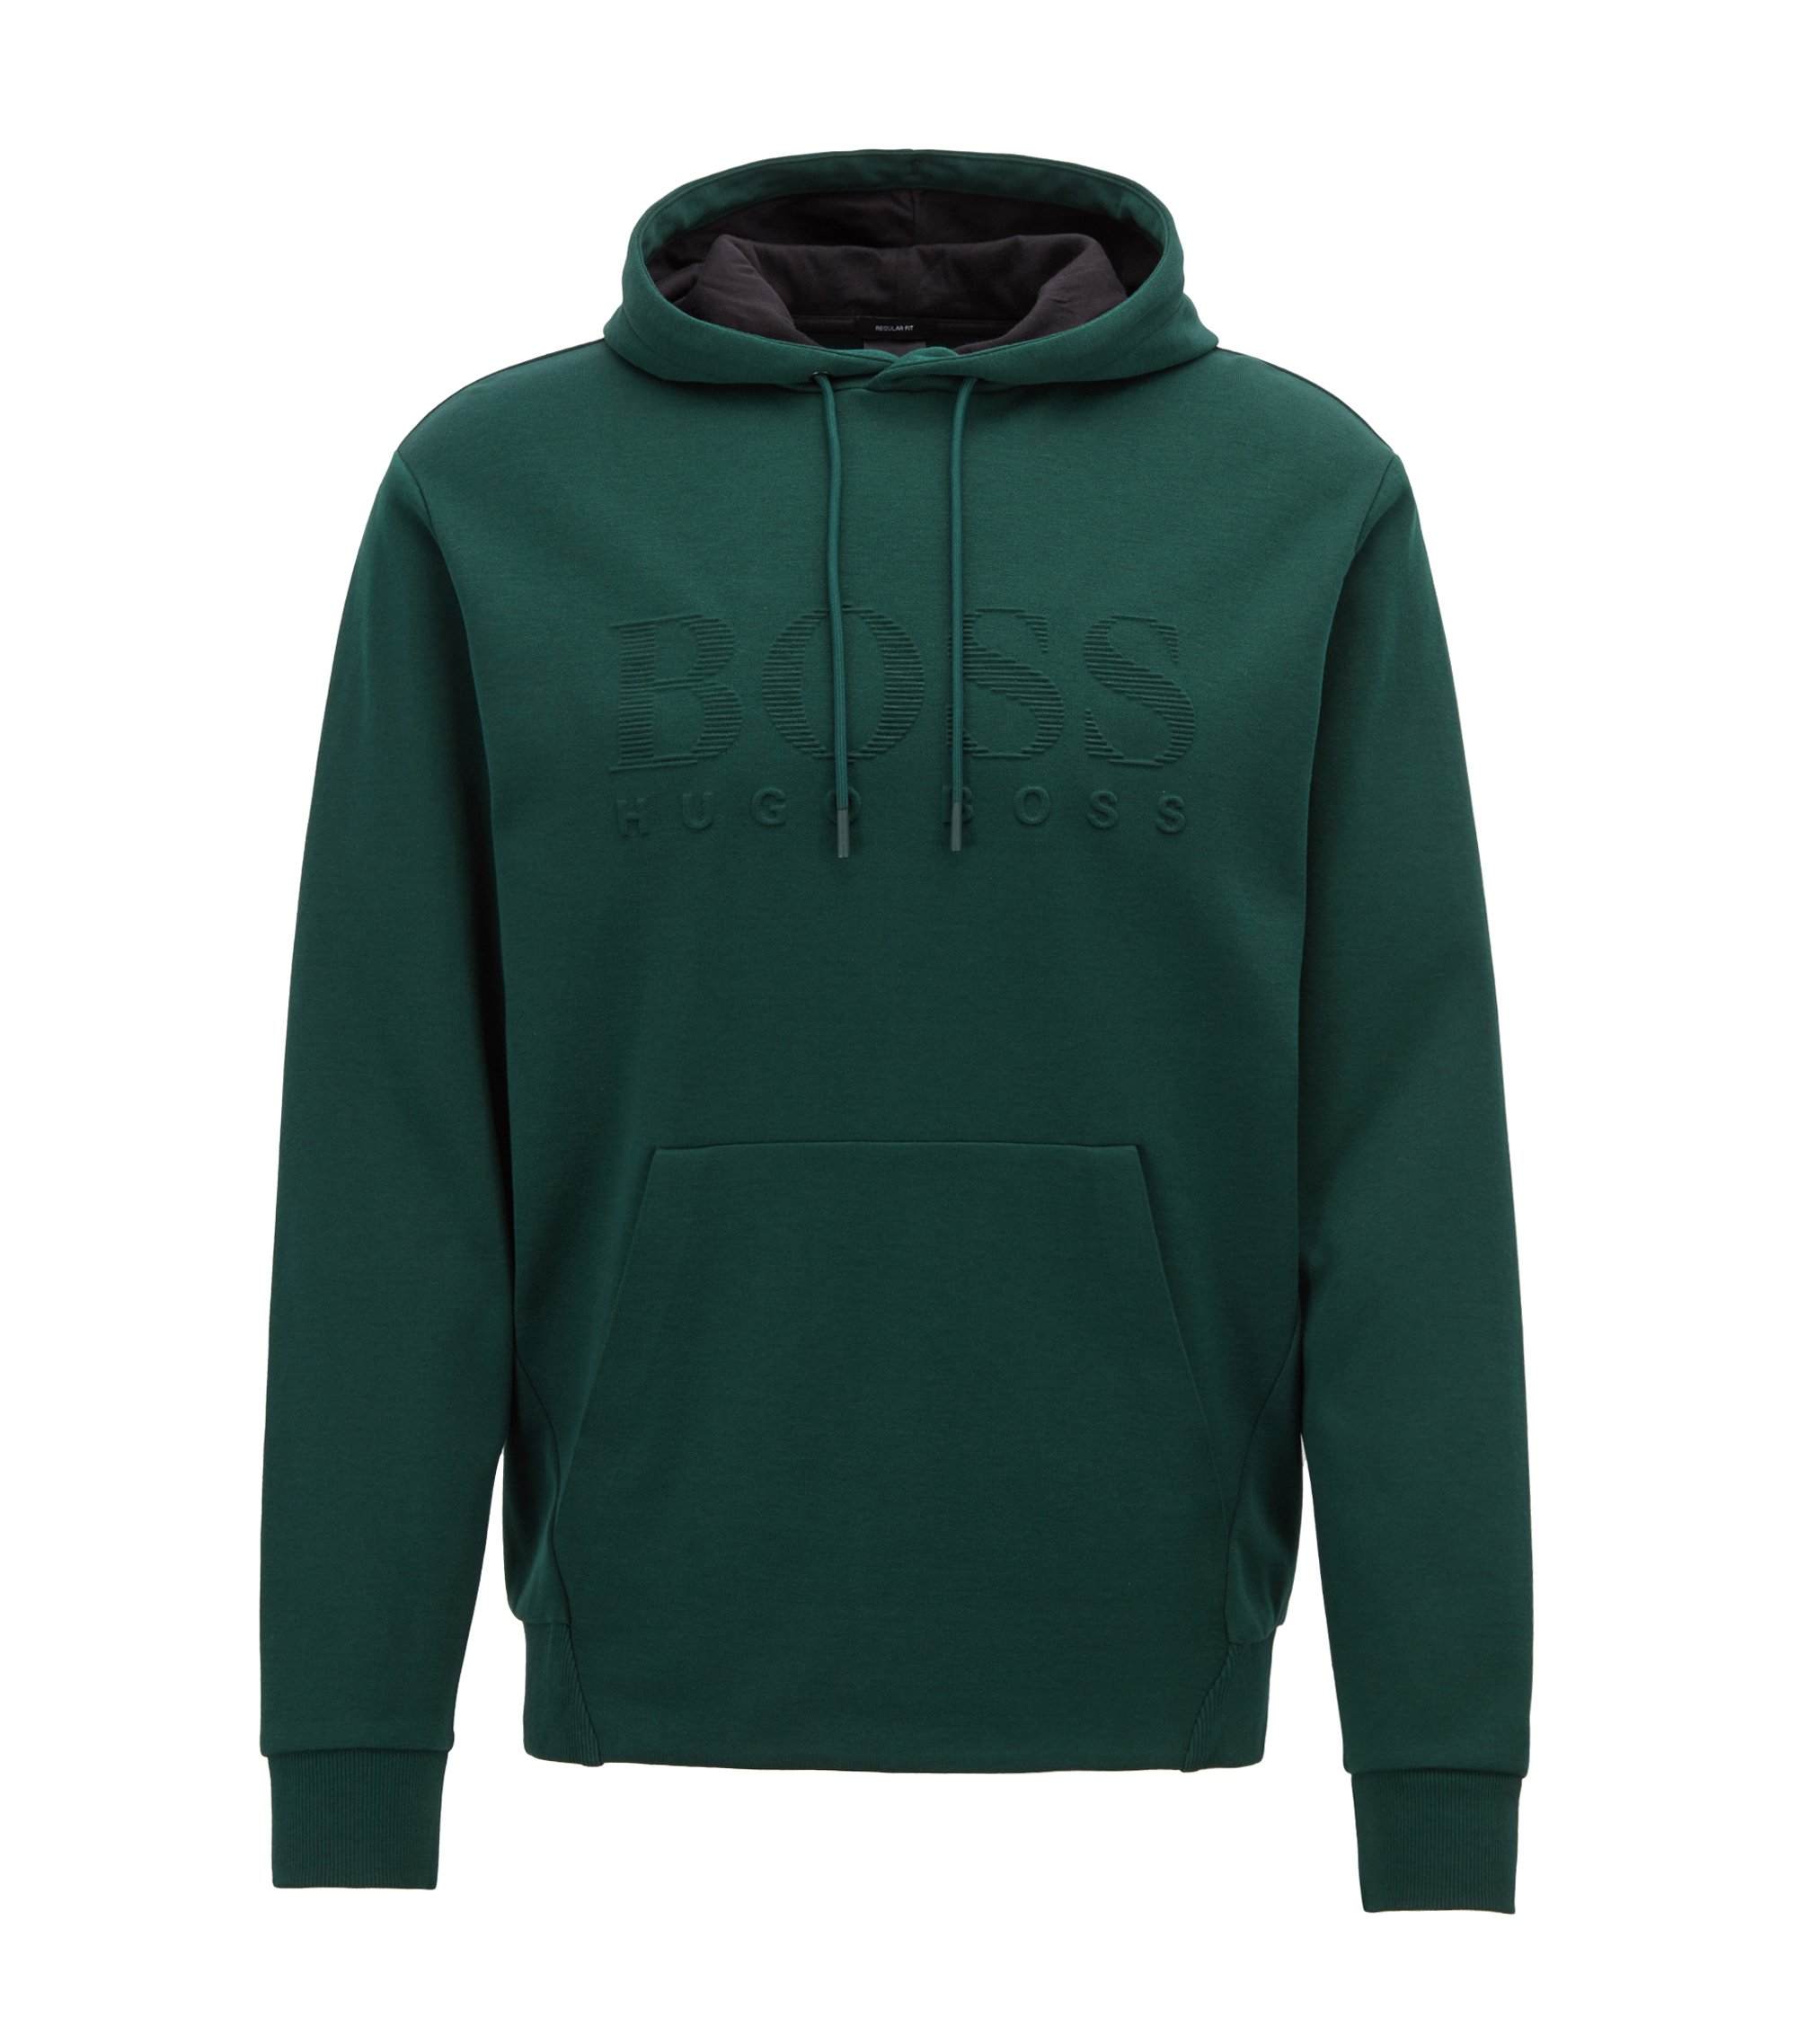 Double-faced hooded sweatshirt with embossed logo, Grün